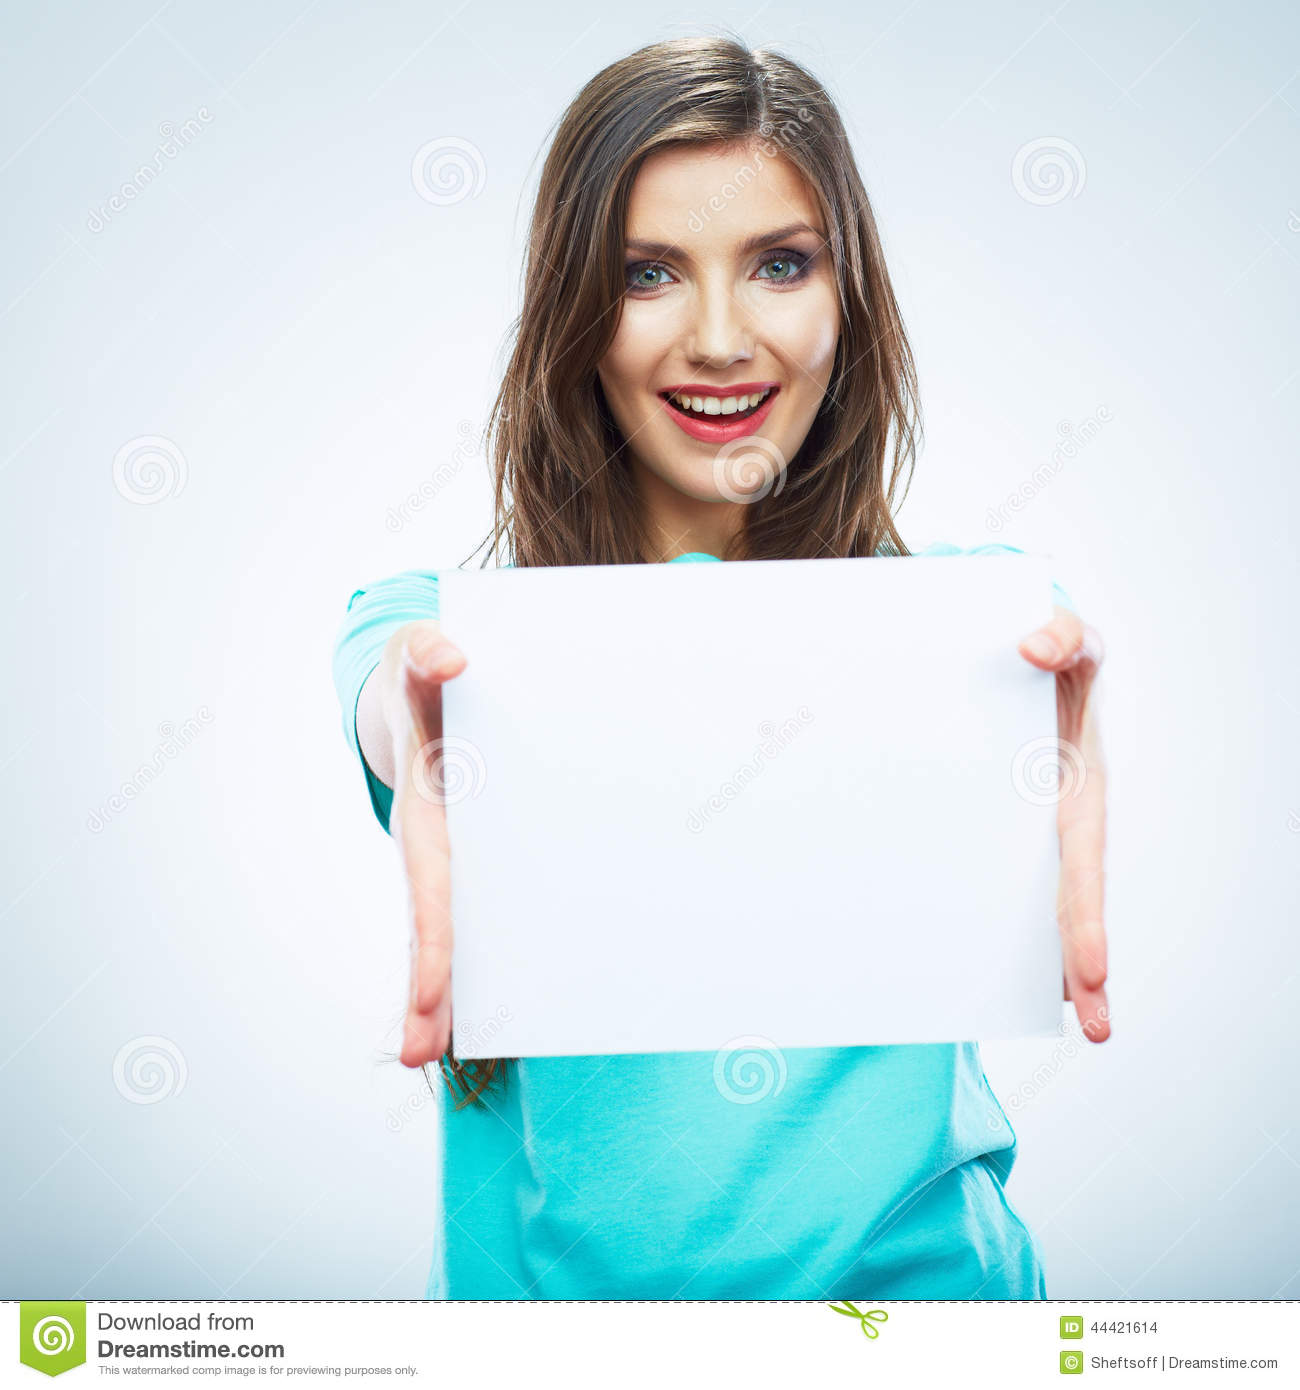 paper on the woman in white Professional quality woman images and pictures at very affordable prices beautiful asian woman happy smile with casual clothes on white background smart studying on table tablet computer, paper documents freelancer works at home online marketing, education, e-learning picture two.